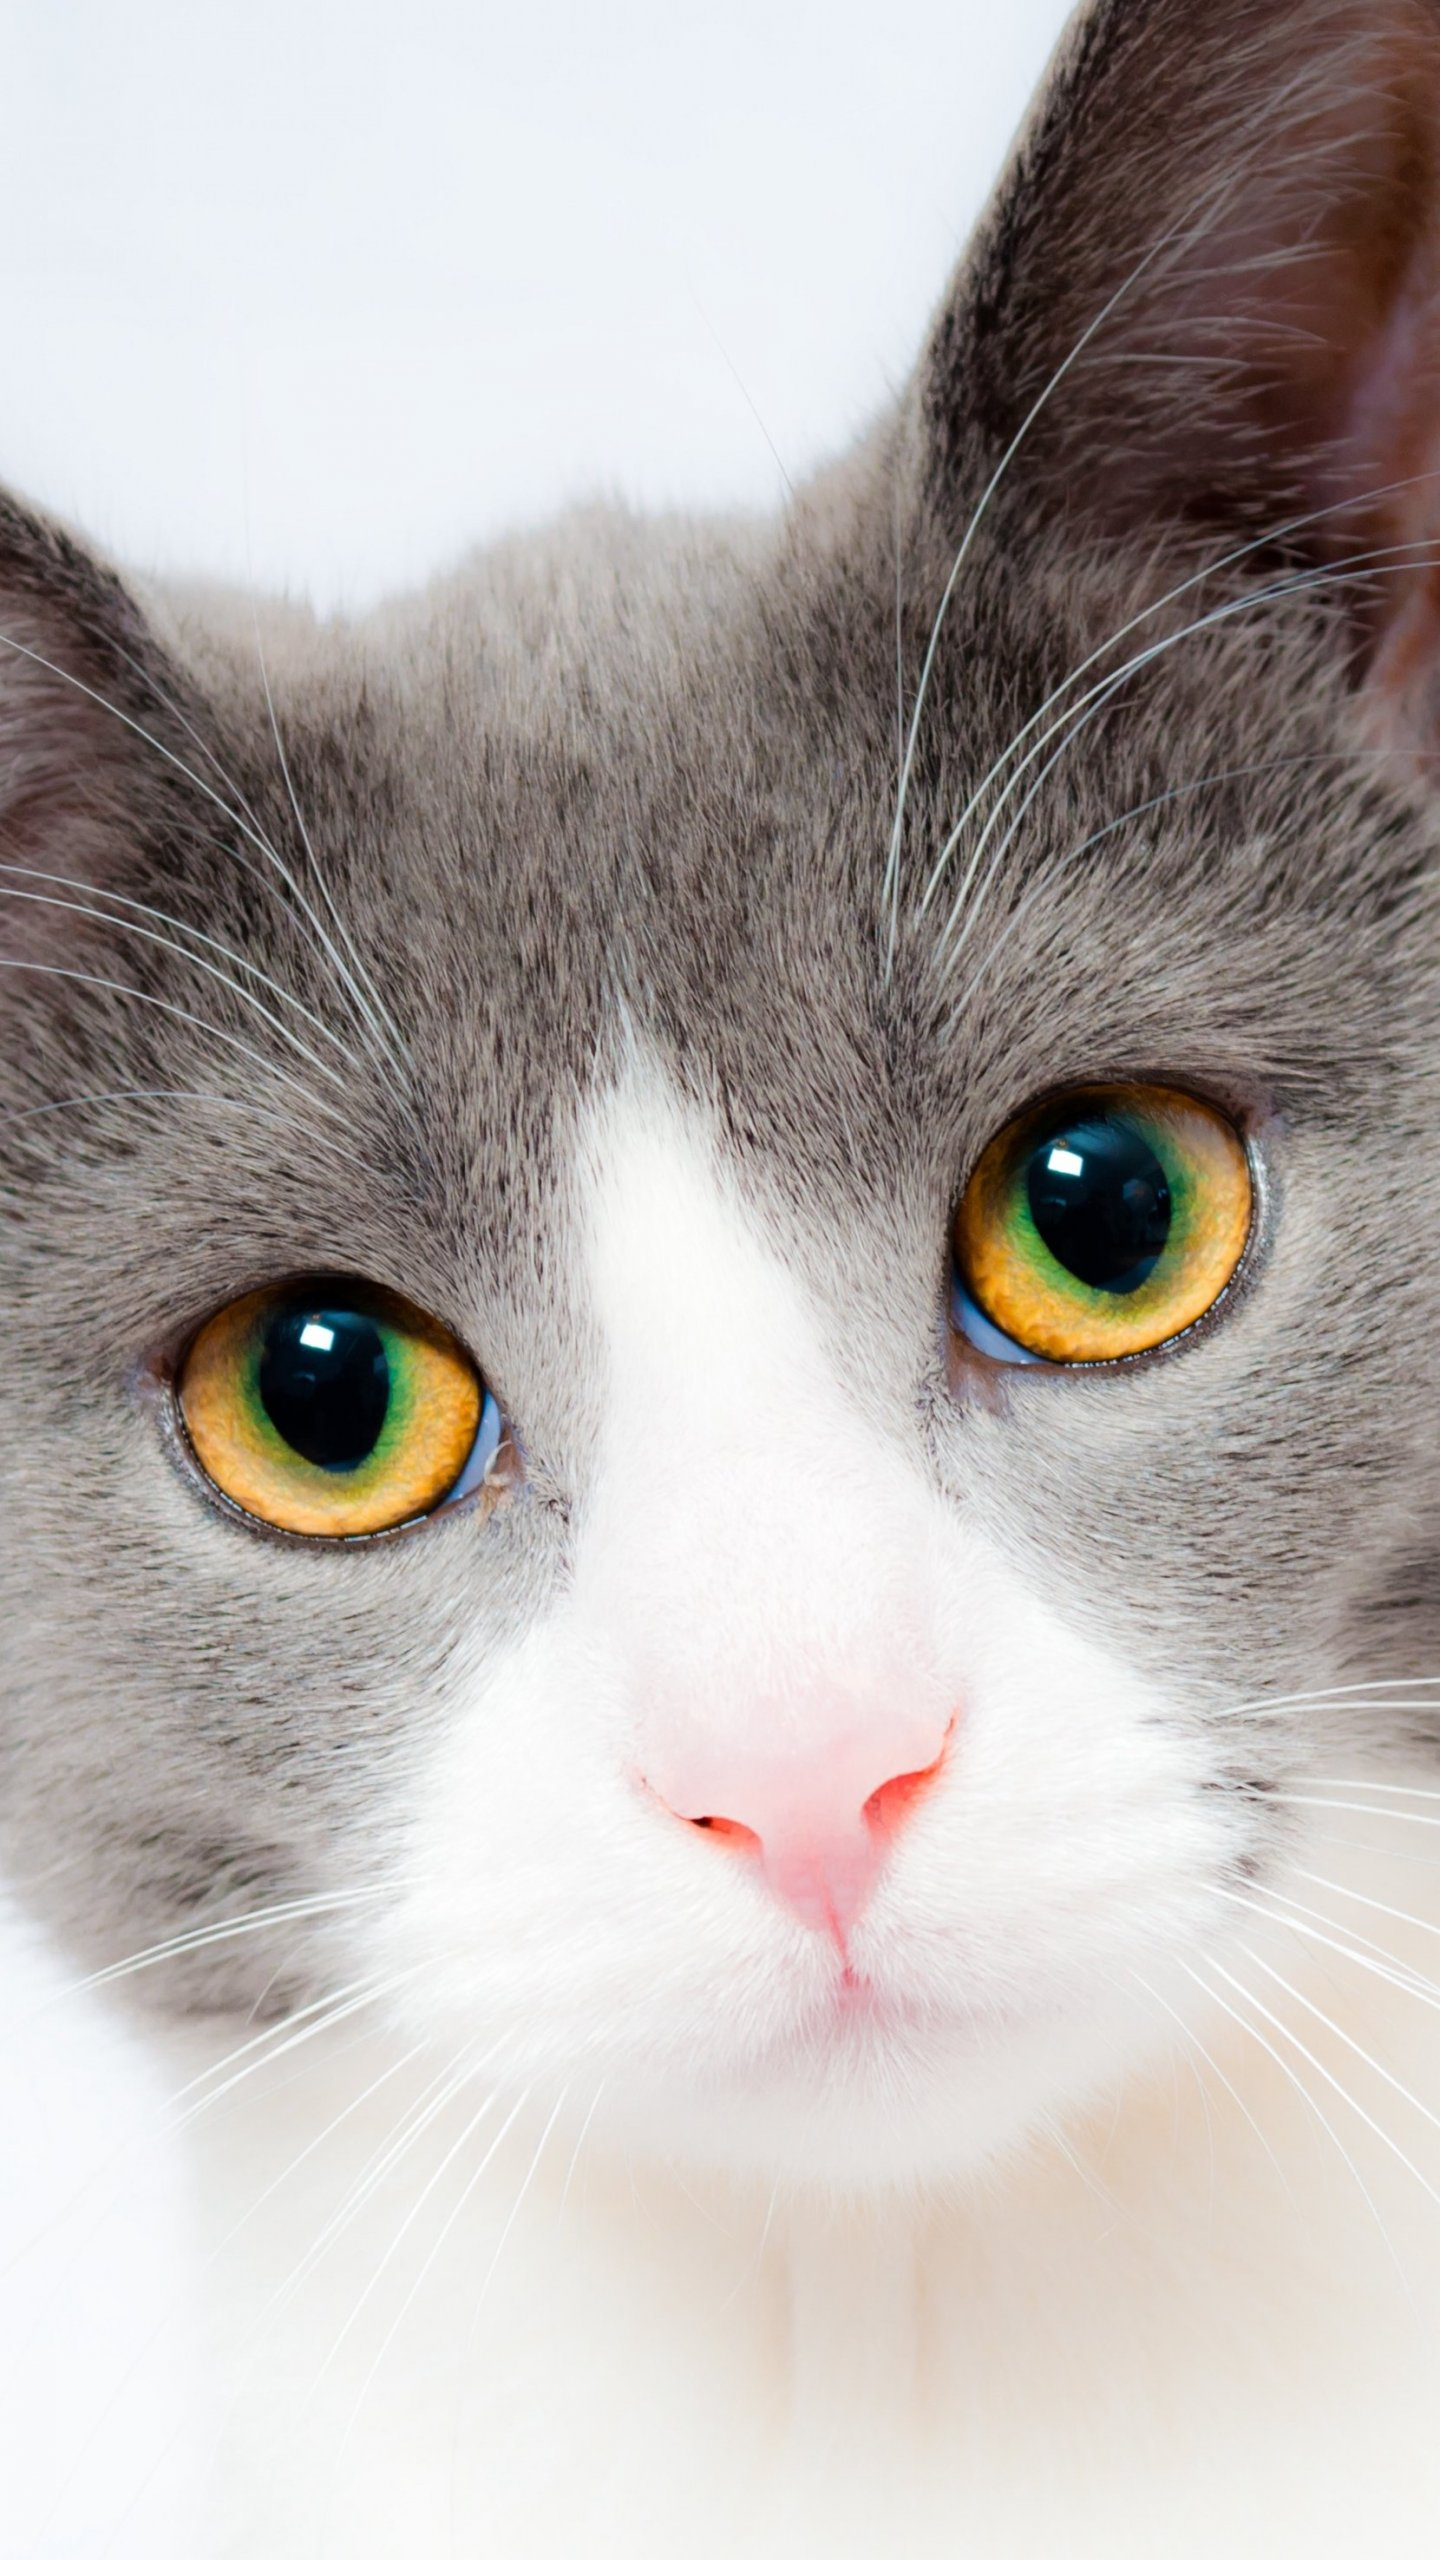 grey and white cat wallpaper - mobile & desktop background